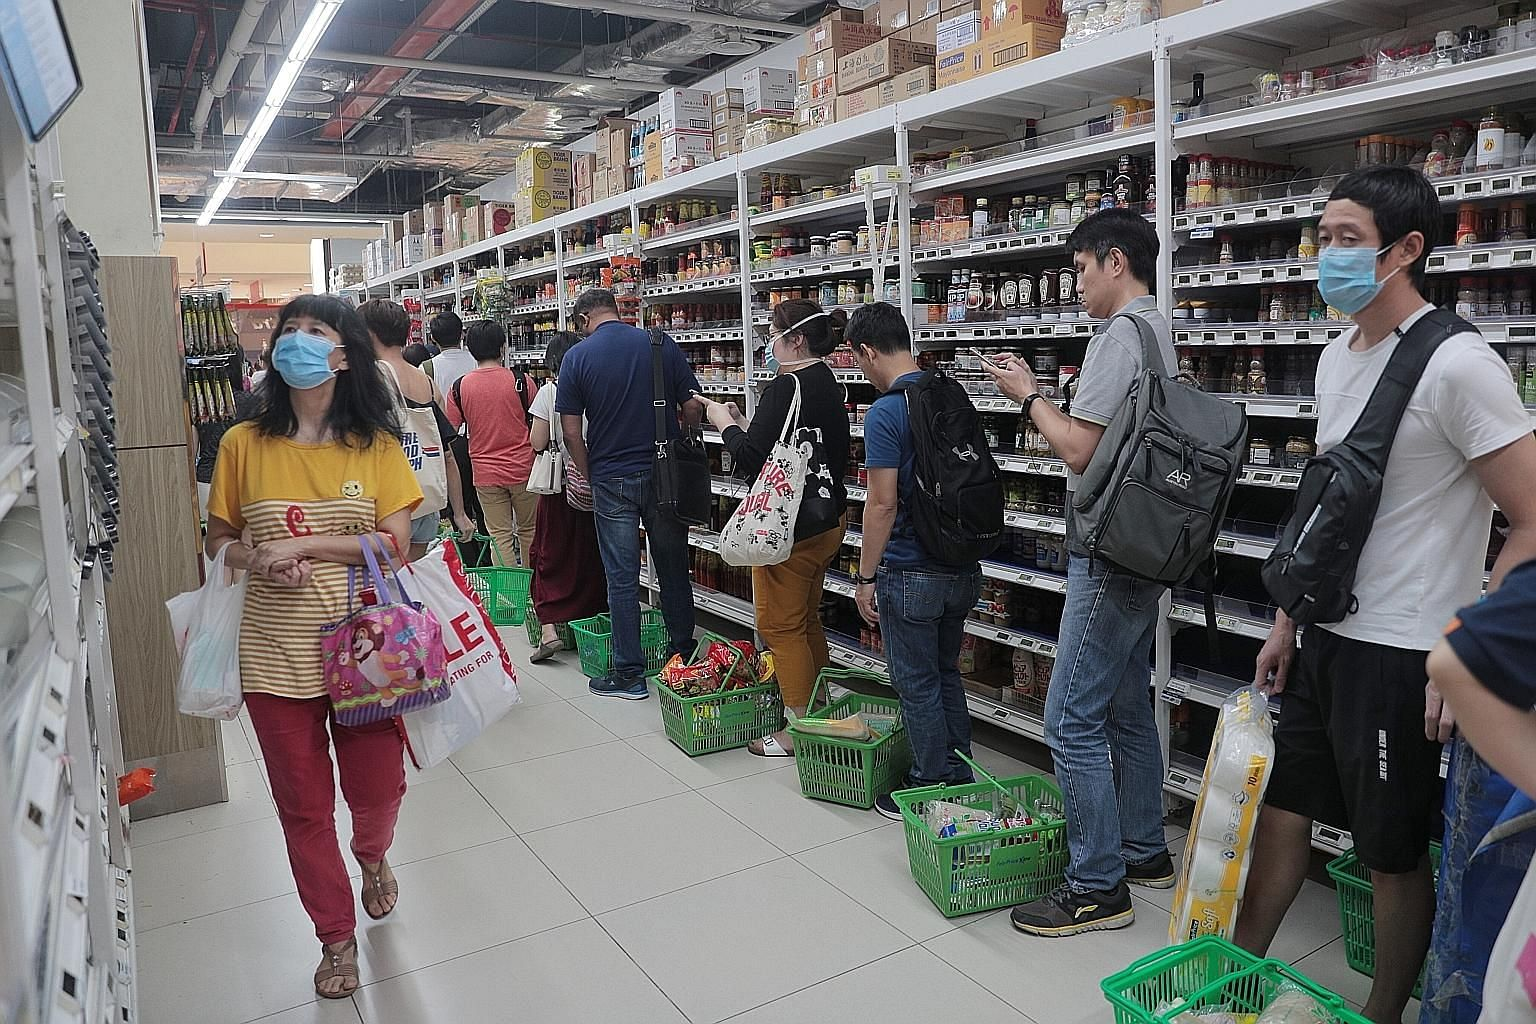 A queue of shoppers at FairPrice supermarket in Jem mall at about 6.20pm yesterday, after stricter measures were announced to curb the spread of the coronavirus. FairPrice said it is getting more manpower for crowd control and to help existing staff.